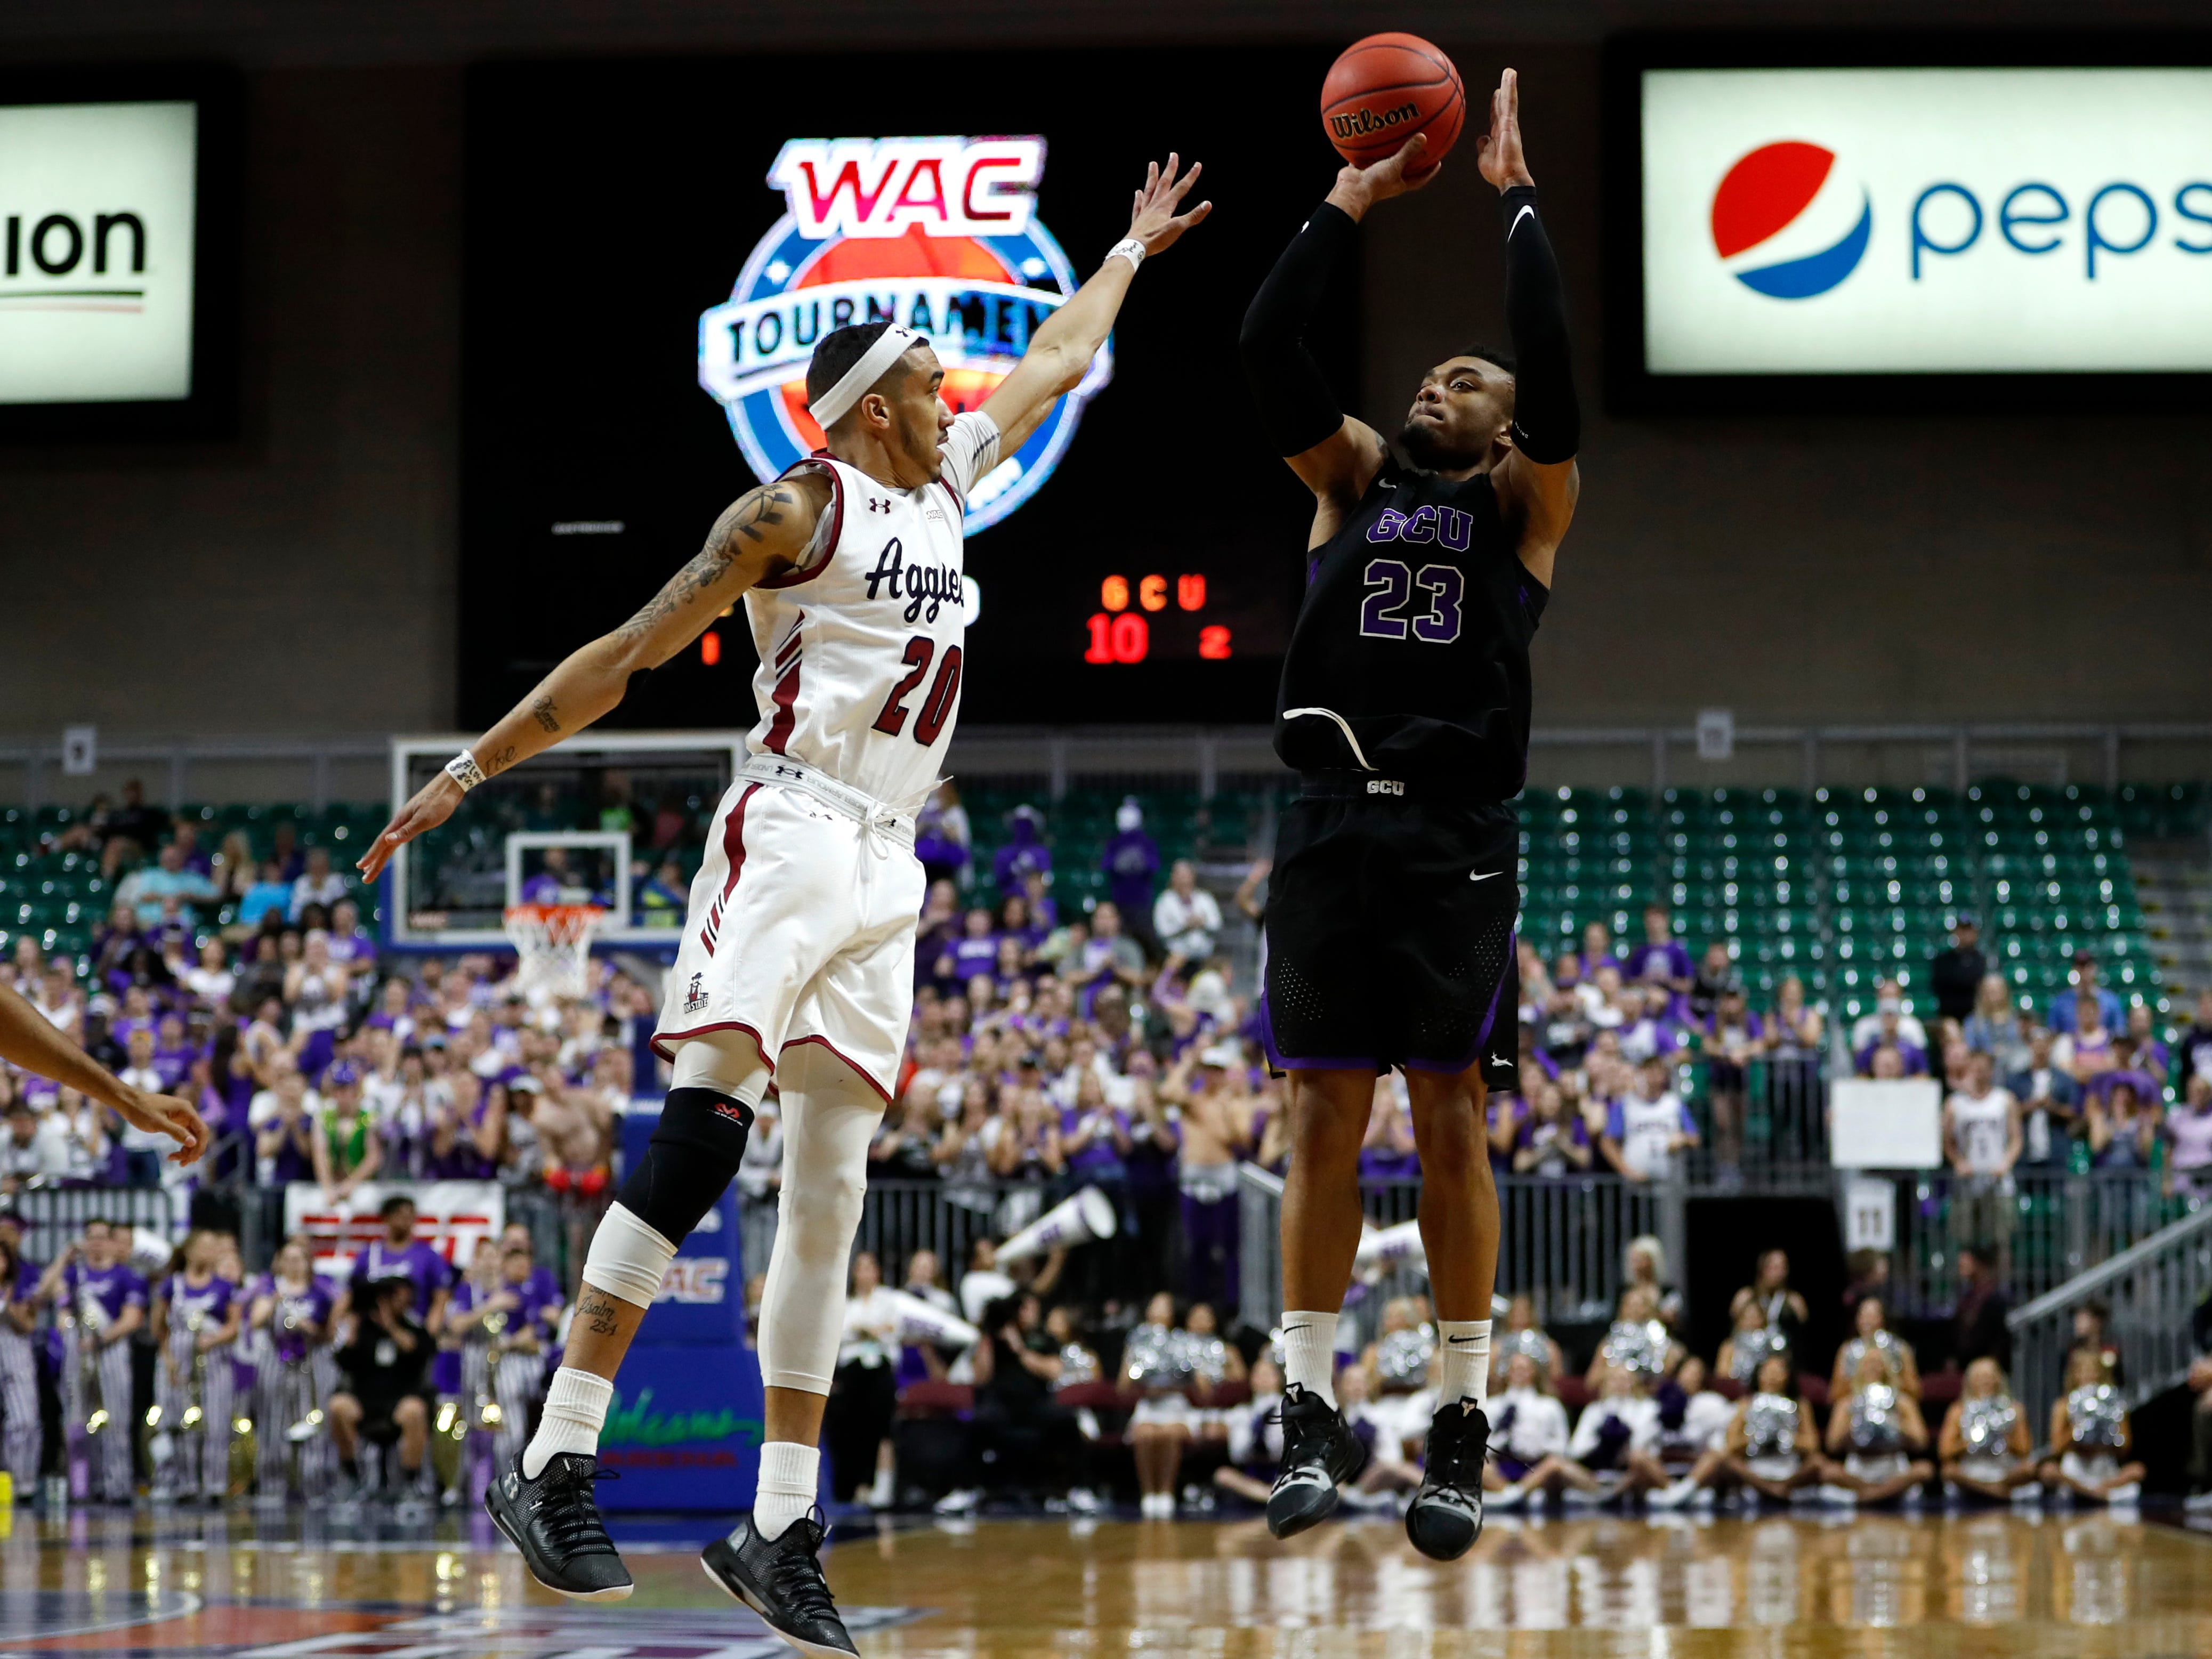 Grand Canyon's Carlos Johnson (23) shoots over New Mexico State guard Trevelin Queen (20) during an NCAA college basketball game for the Western Athletic Conference men's tournament championship Saturday, March 16, 2019, in Las Vegas.